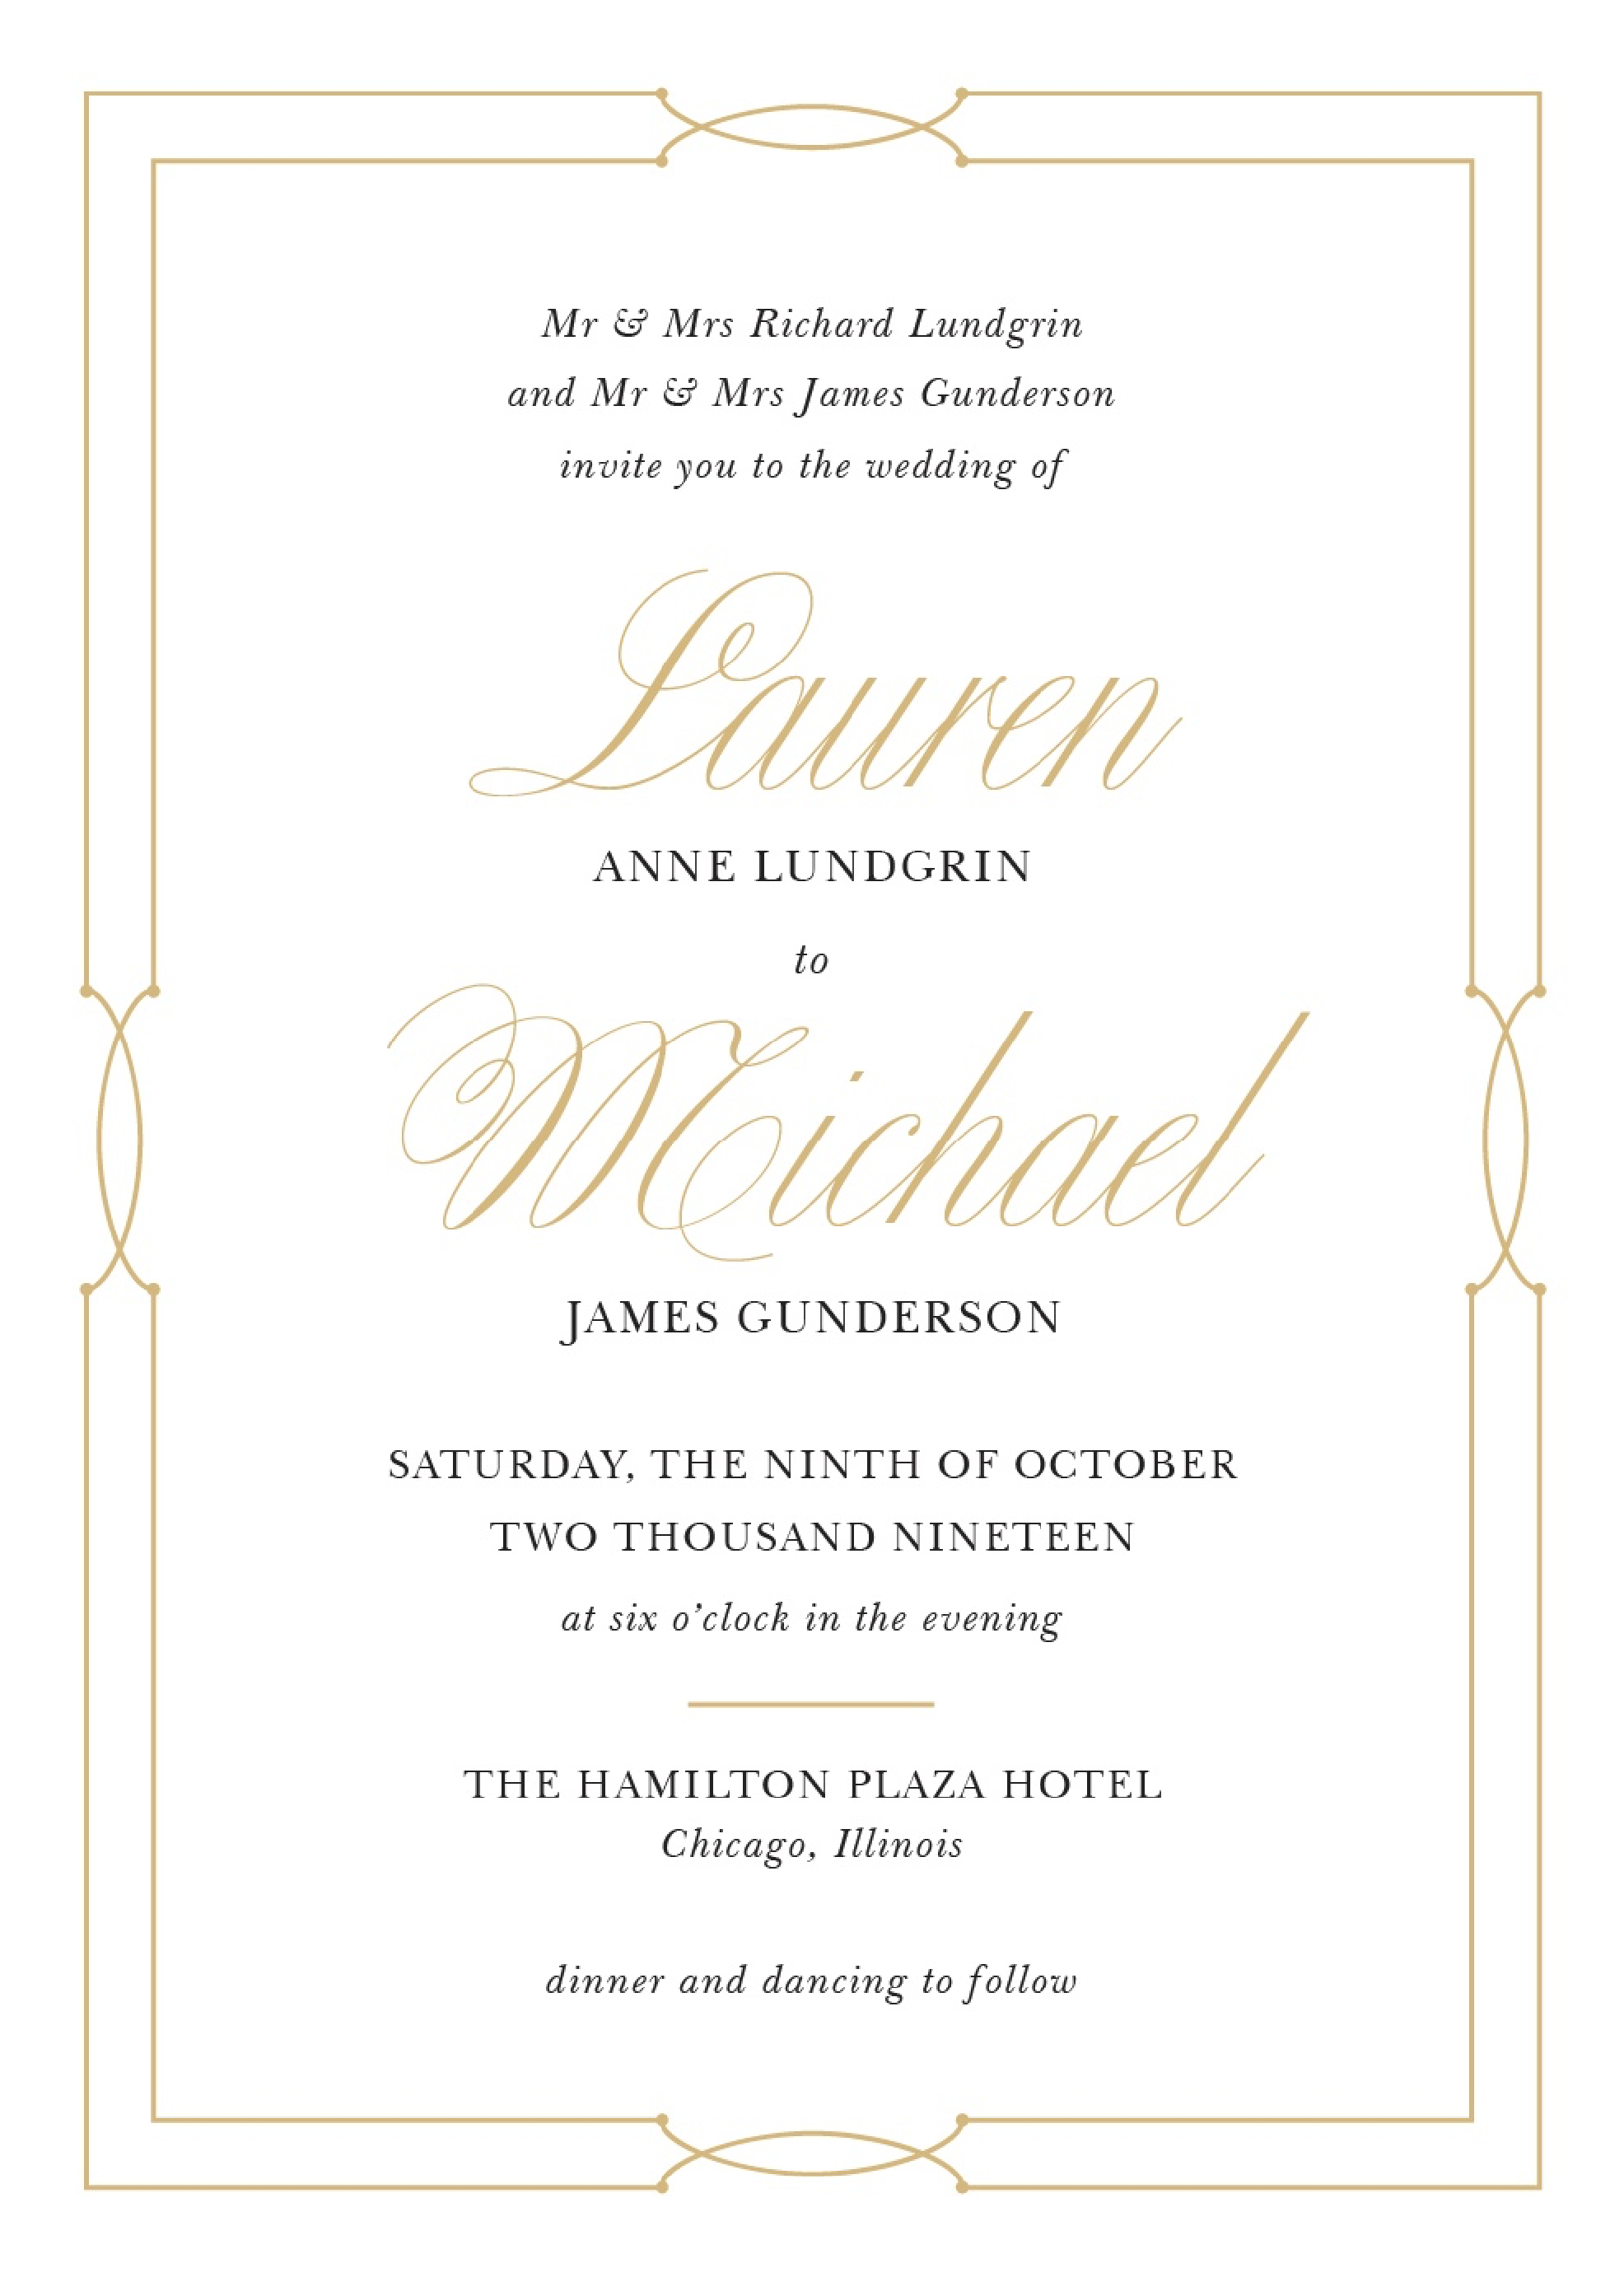 008 Exceptional Wedding Invite Wording Template Highest Clarity  Templates Chinese Invitation Microsoft Word From Bride And Groom Example InvitingFull